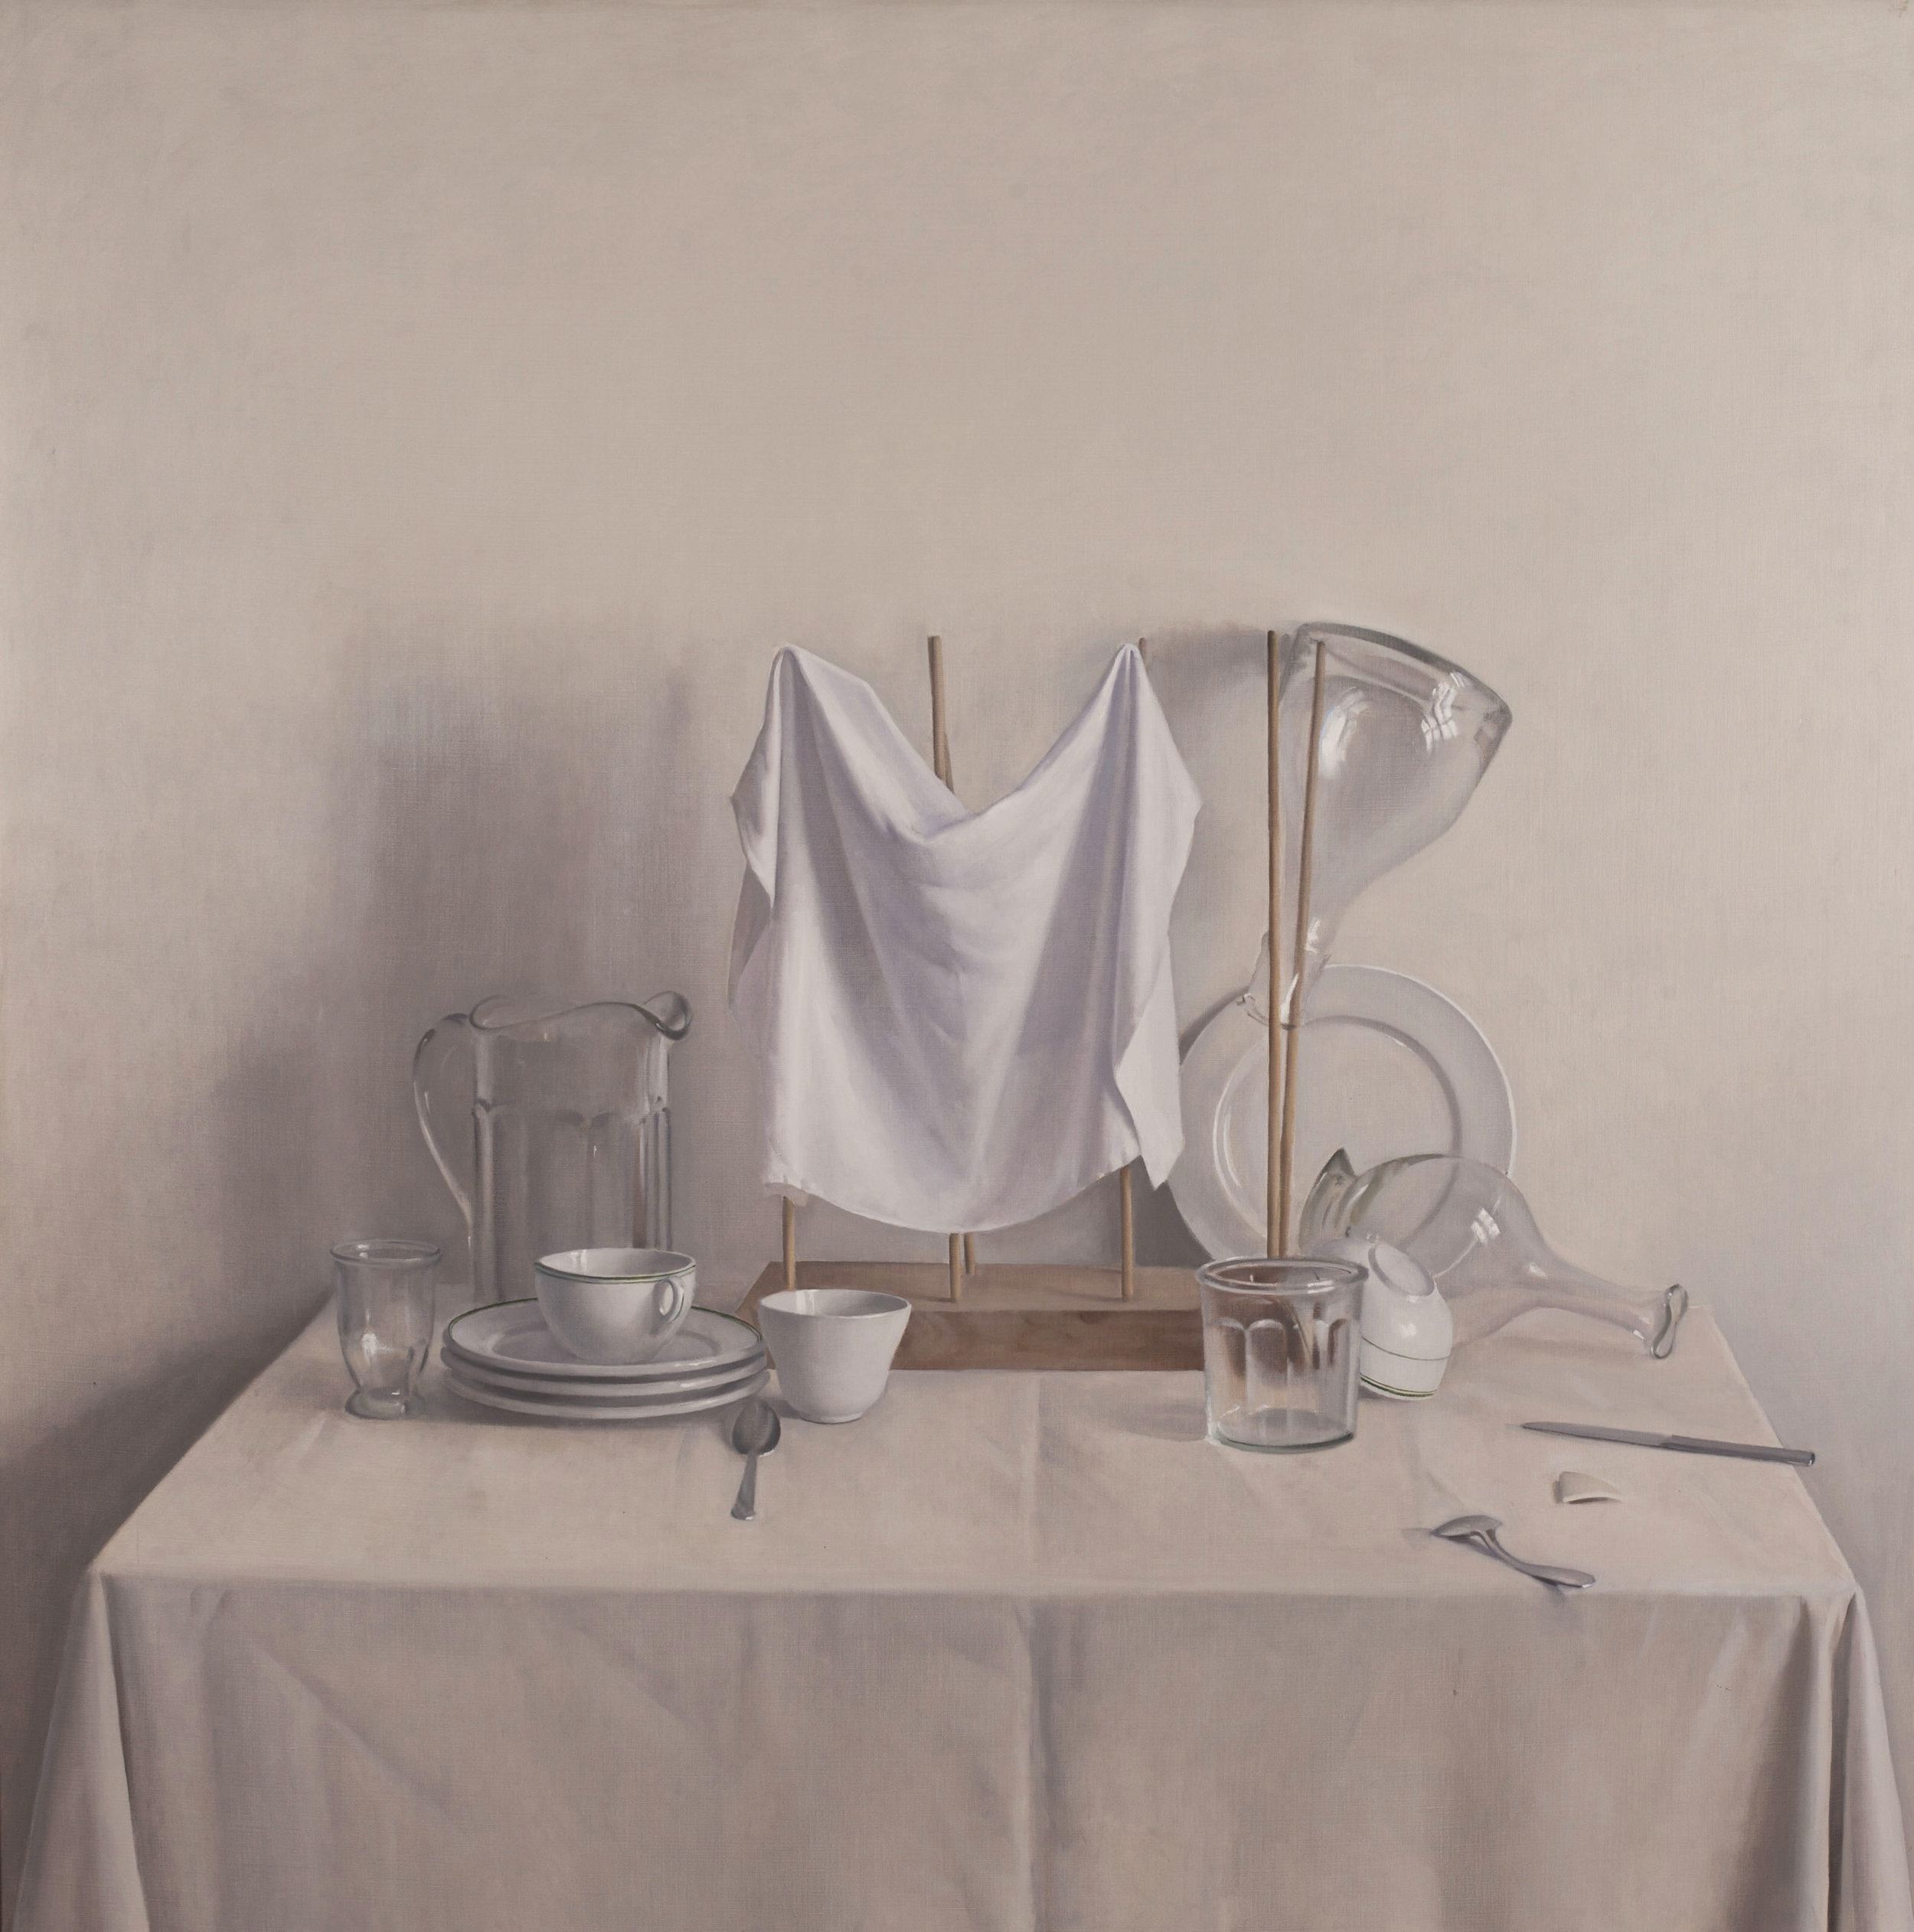 Raymond Han  (1931-2017)  Drying Rack with Napkin and Decanter , 1986 Oil on canvas Work size: 52 x 52 inches 132.1 x 132.1 cm